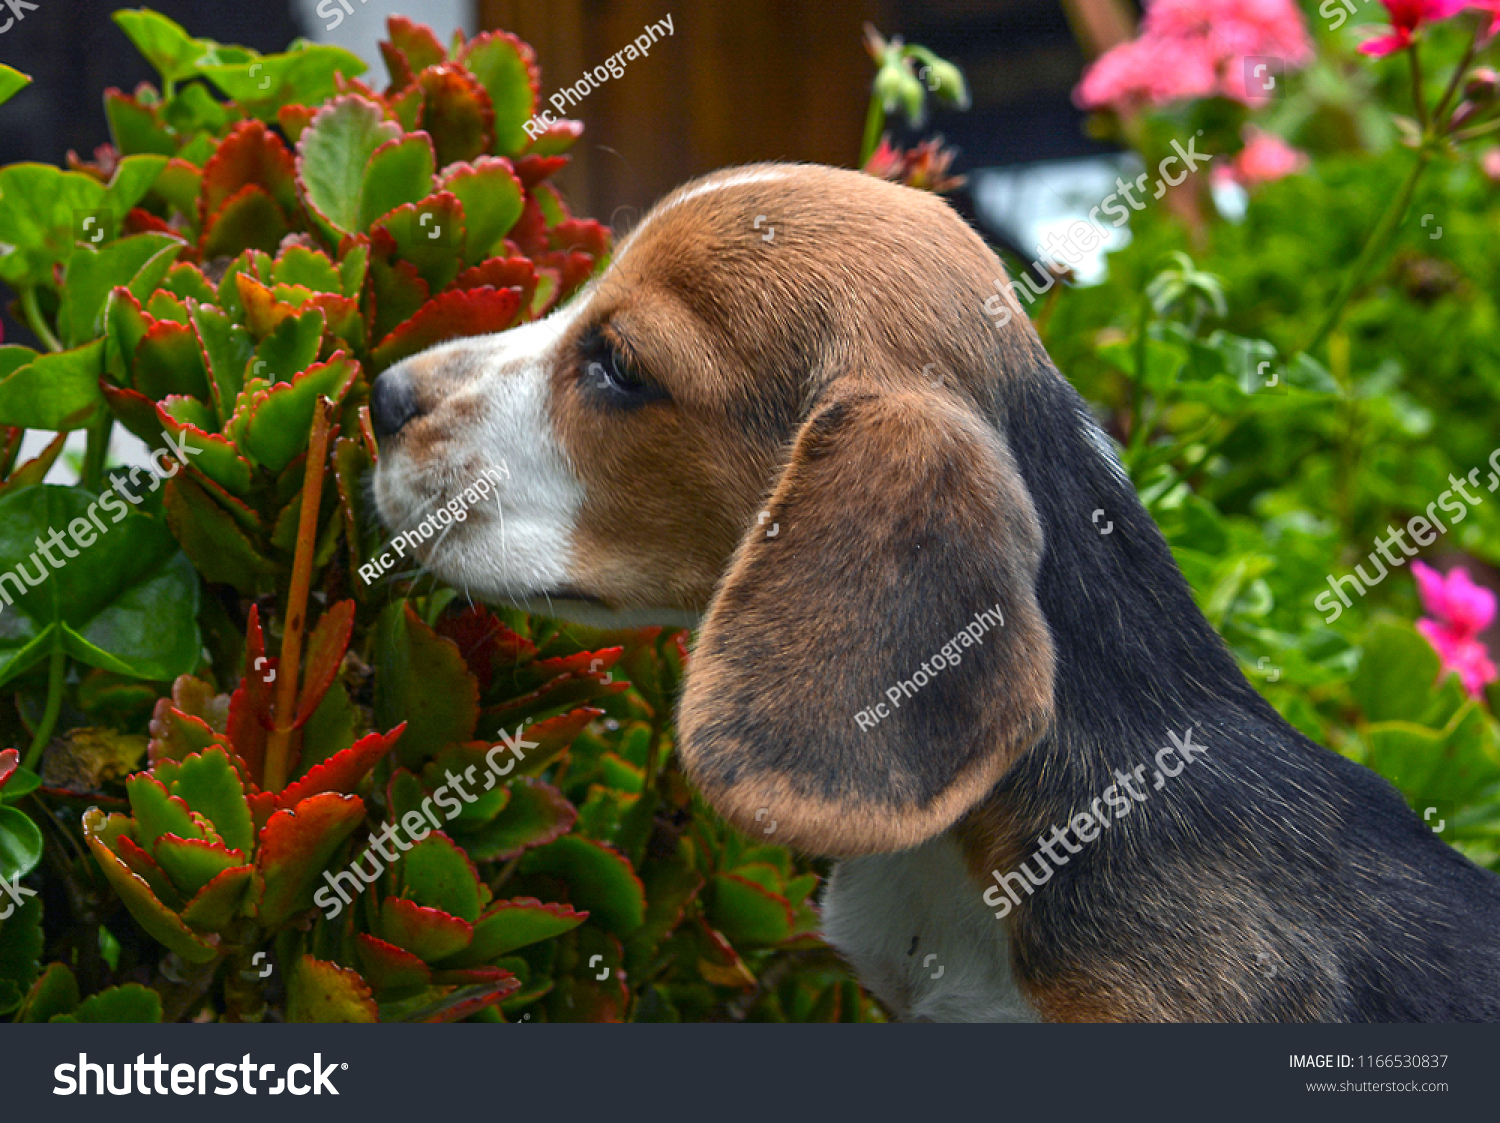 Very Nice Profile Face Beagle Sniffing Animals Wildlife Stock Image 1166530837